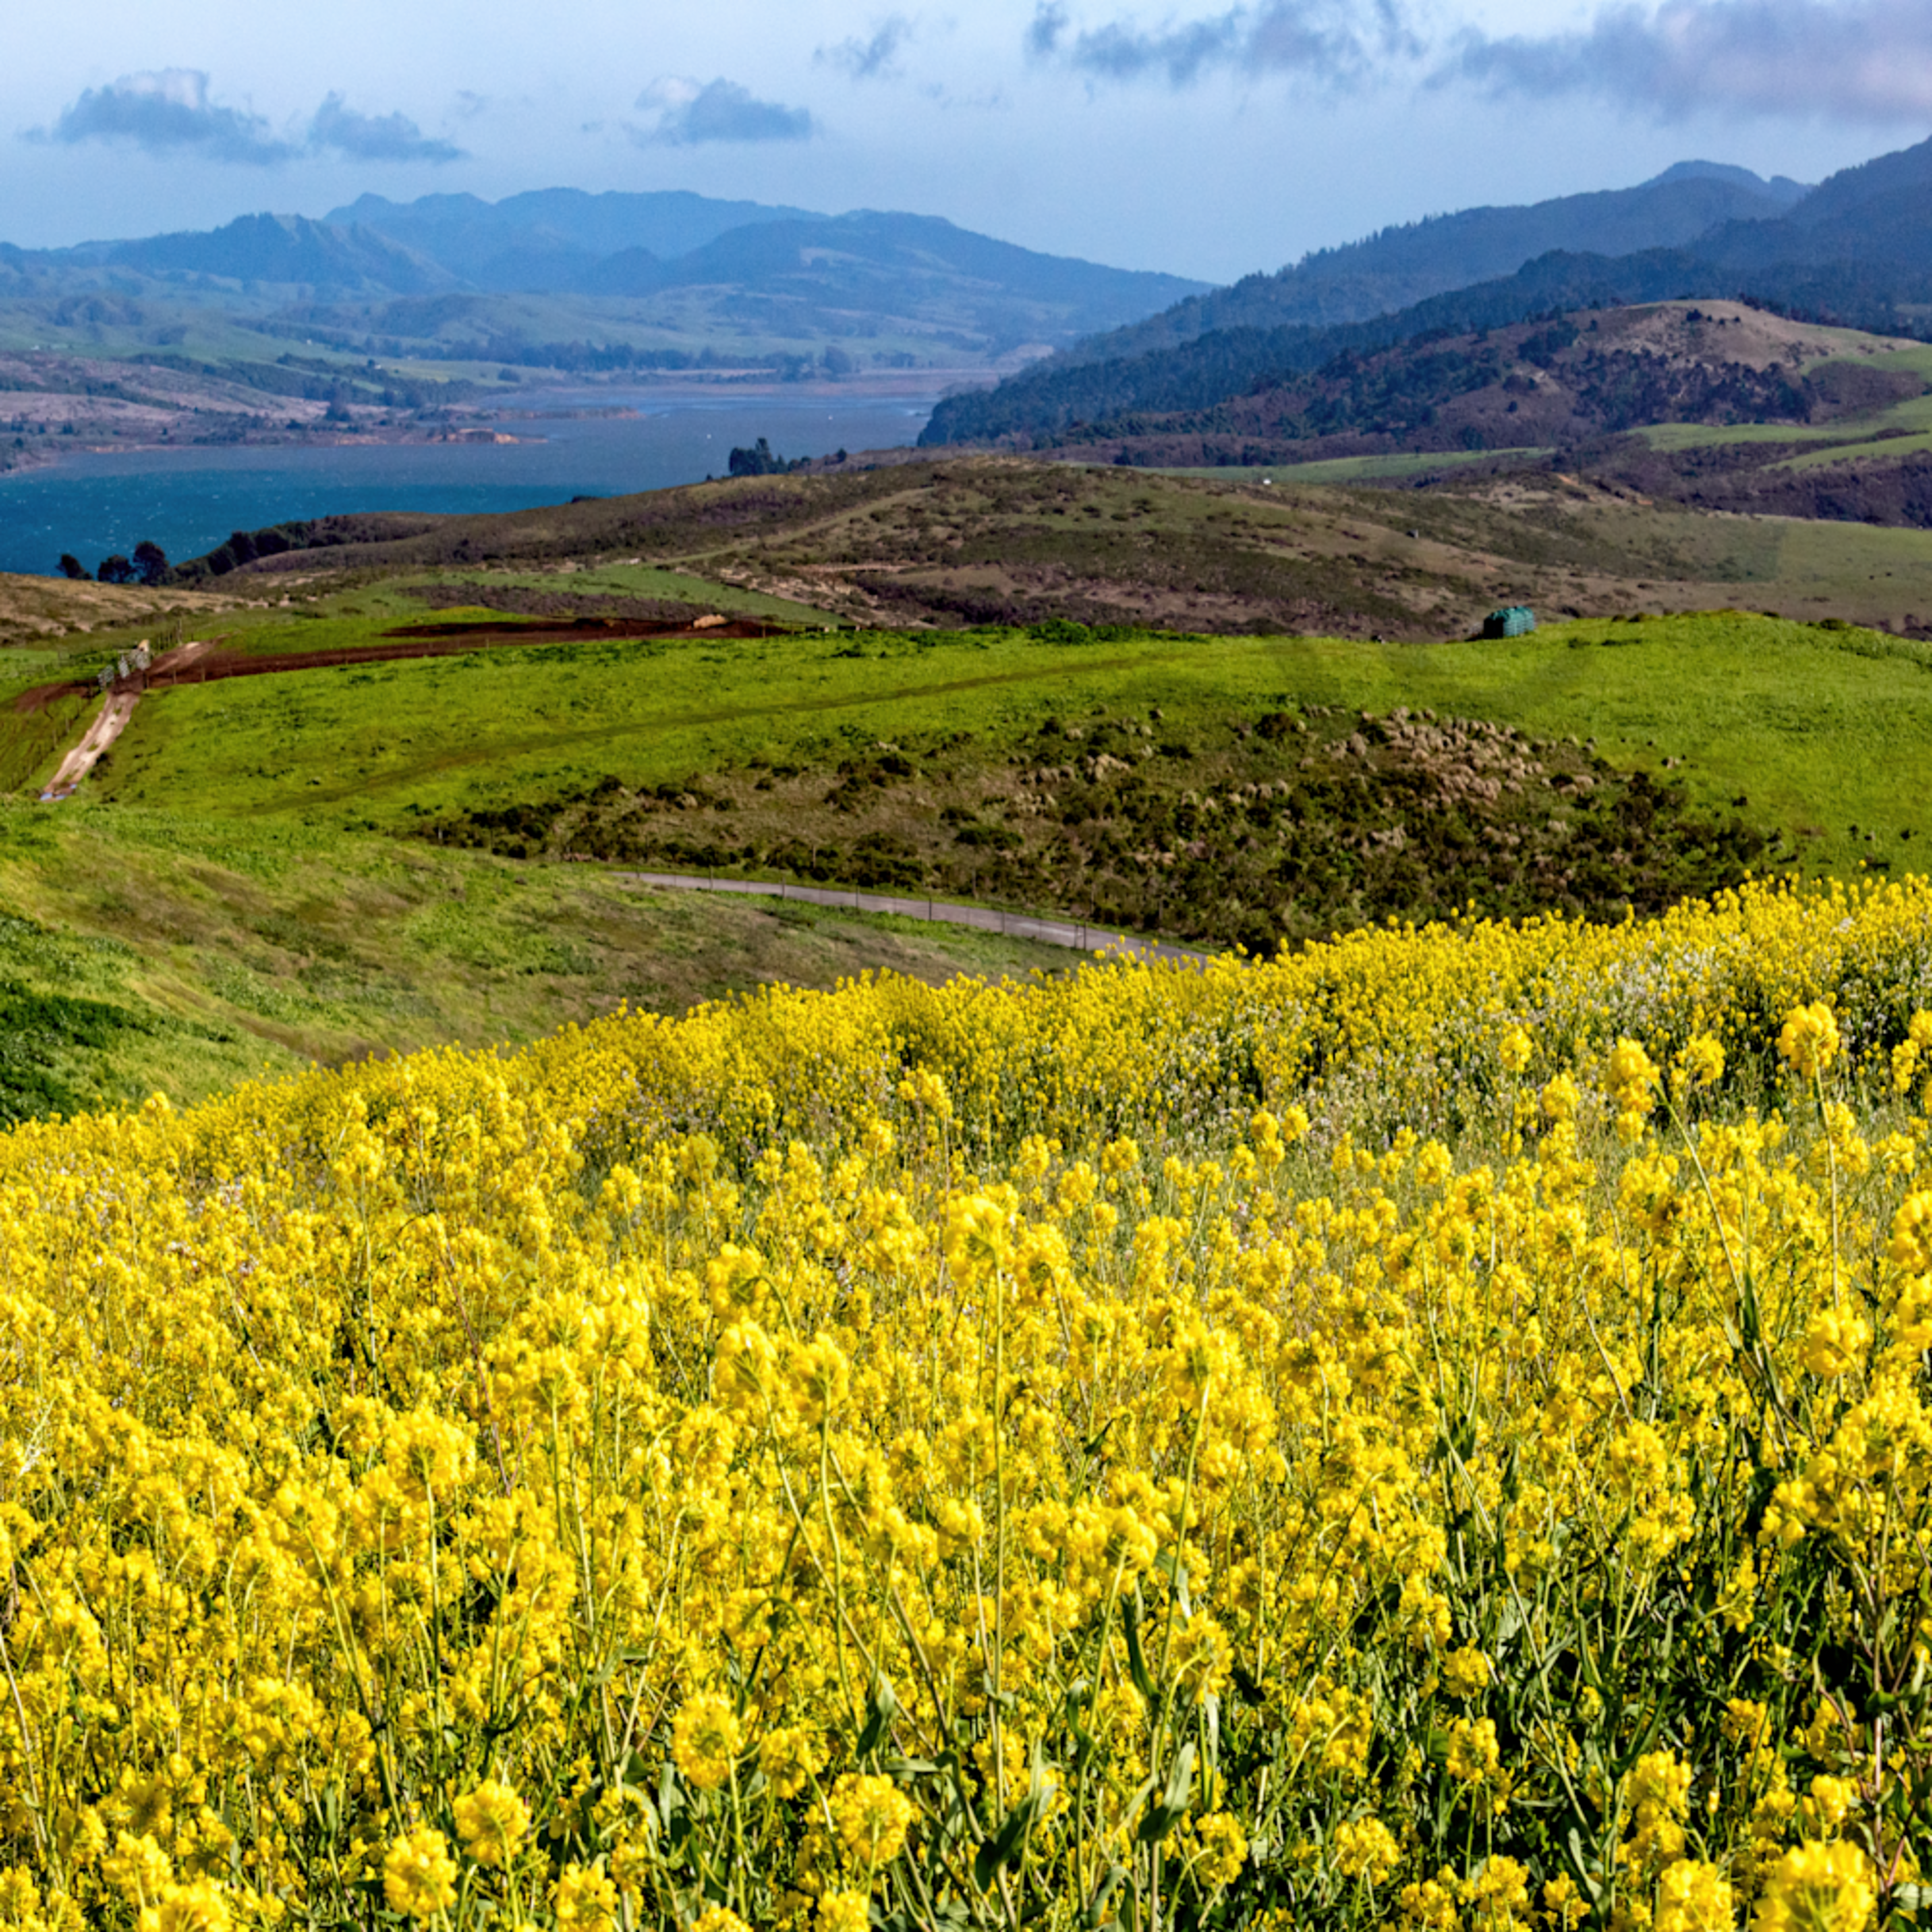 Fields of gold flowers overlooking north shore of point reyes ca kdraca